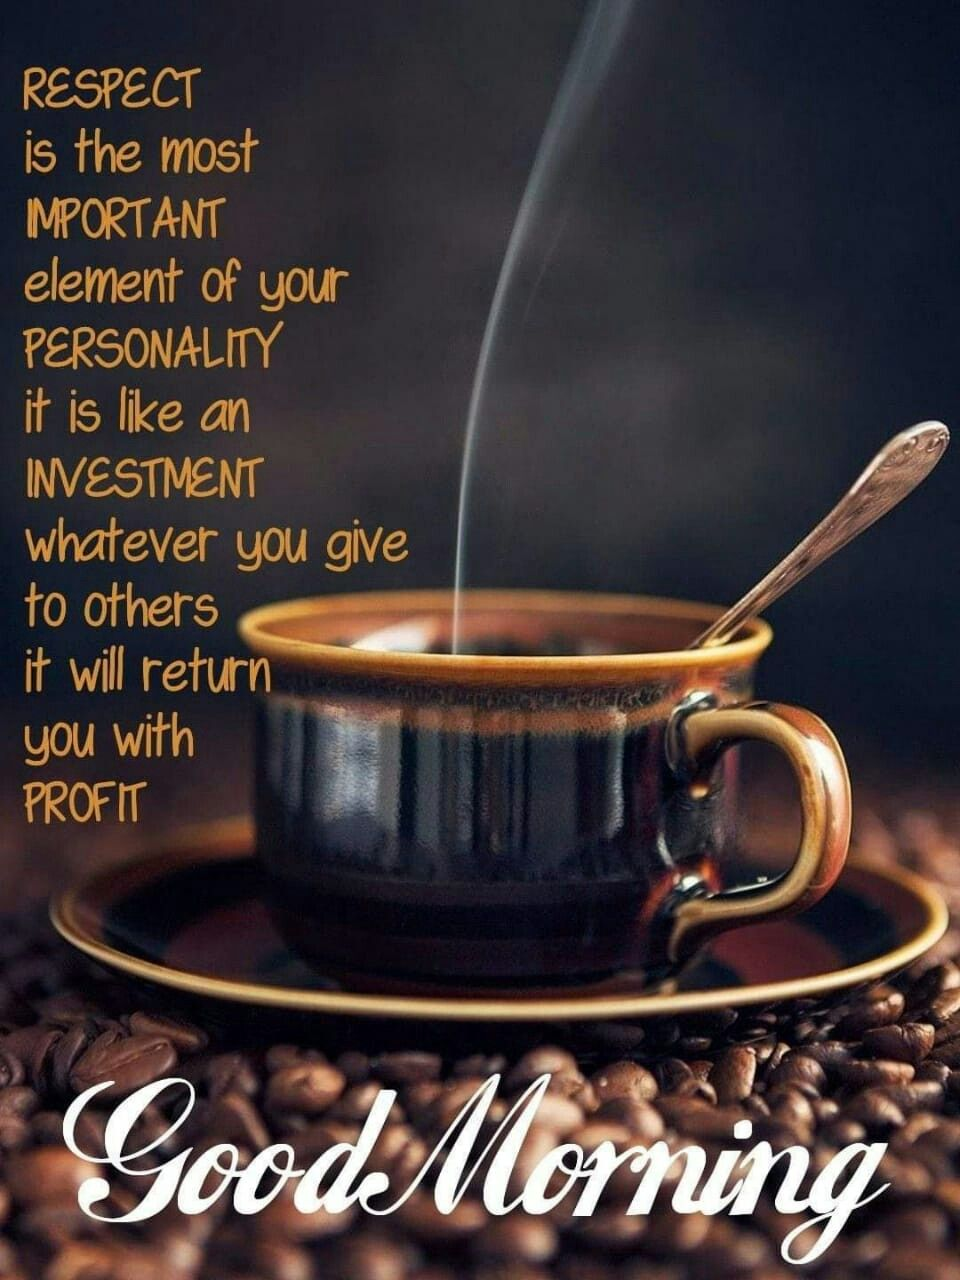 Good Morning Inspirations Morning Inspirational Quotes Good Morning Inspirational Quotes Good Morning Messages